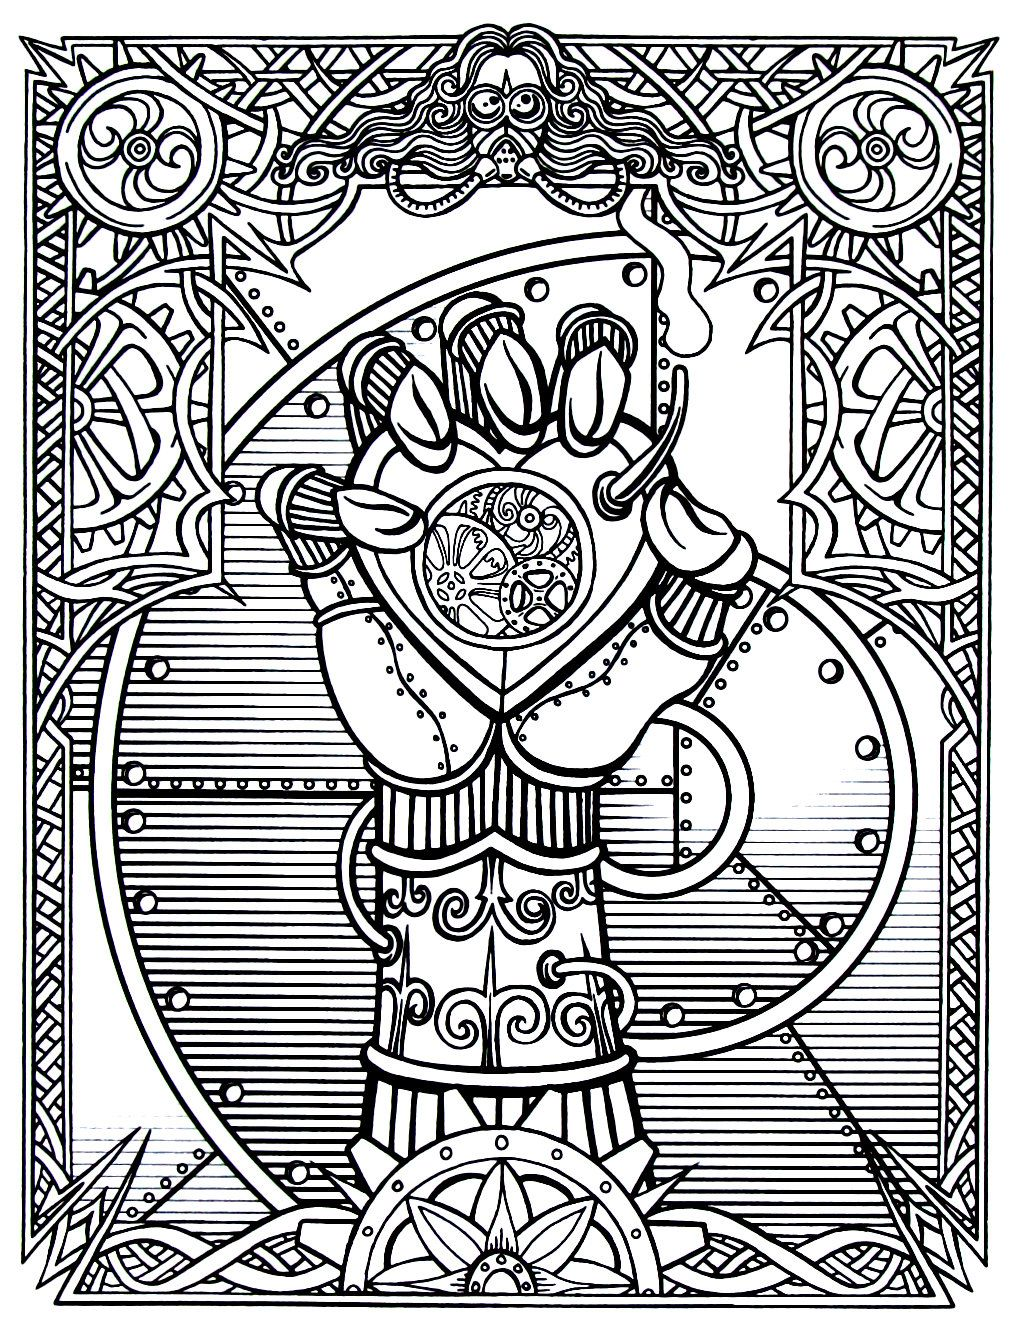 Steampunk Wrapped Hand With Heart Clock Printable Coloring Book Page Steampunk Coloring Book Steampunk Coloring Coloring Books